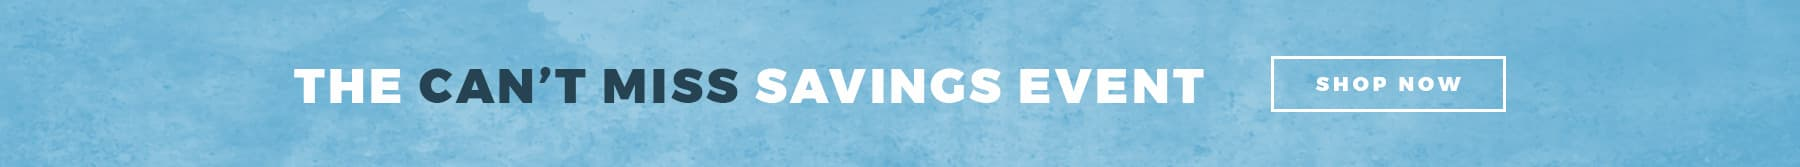 THE CAN'T MISS SAVINGS EVENT  - SHOP NOW